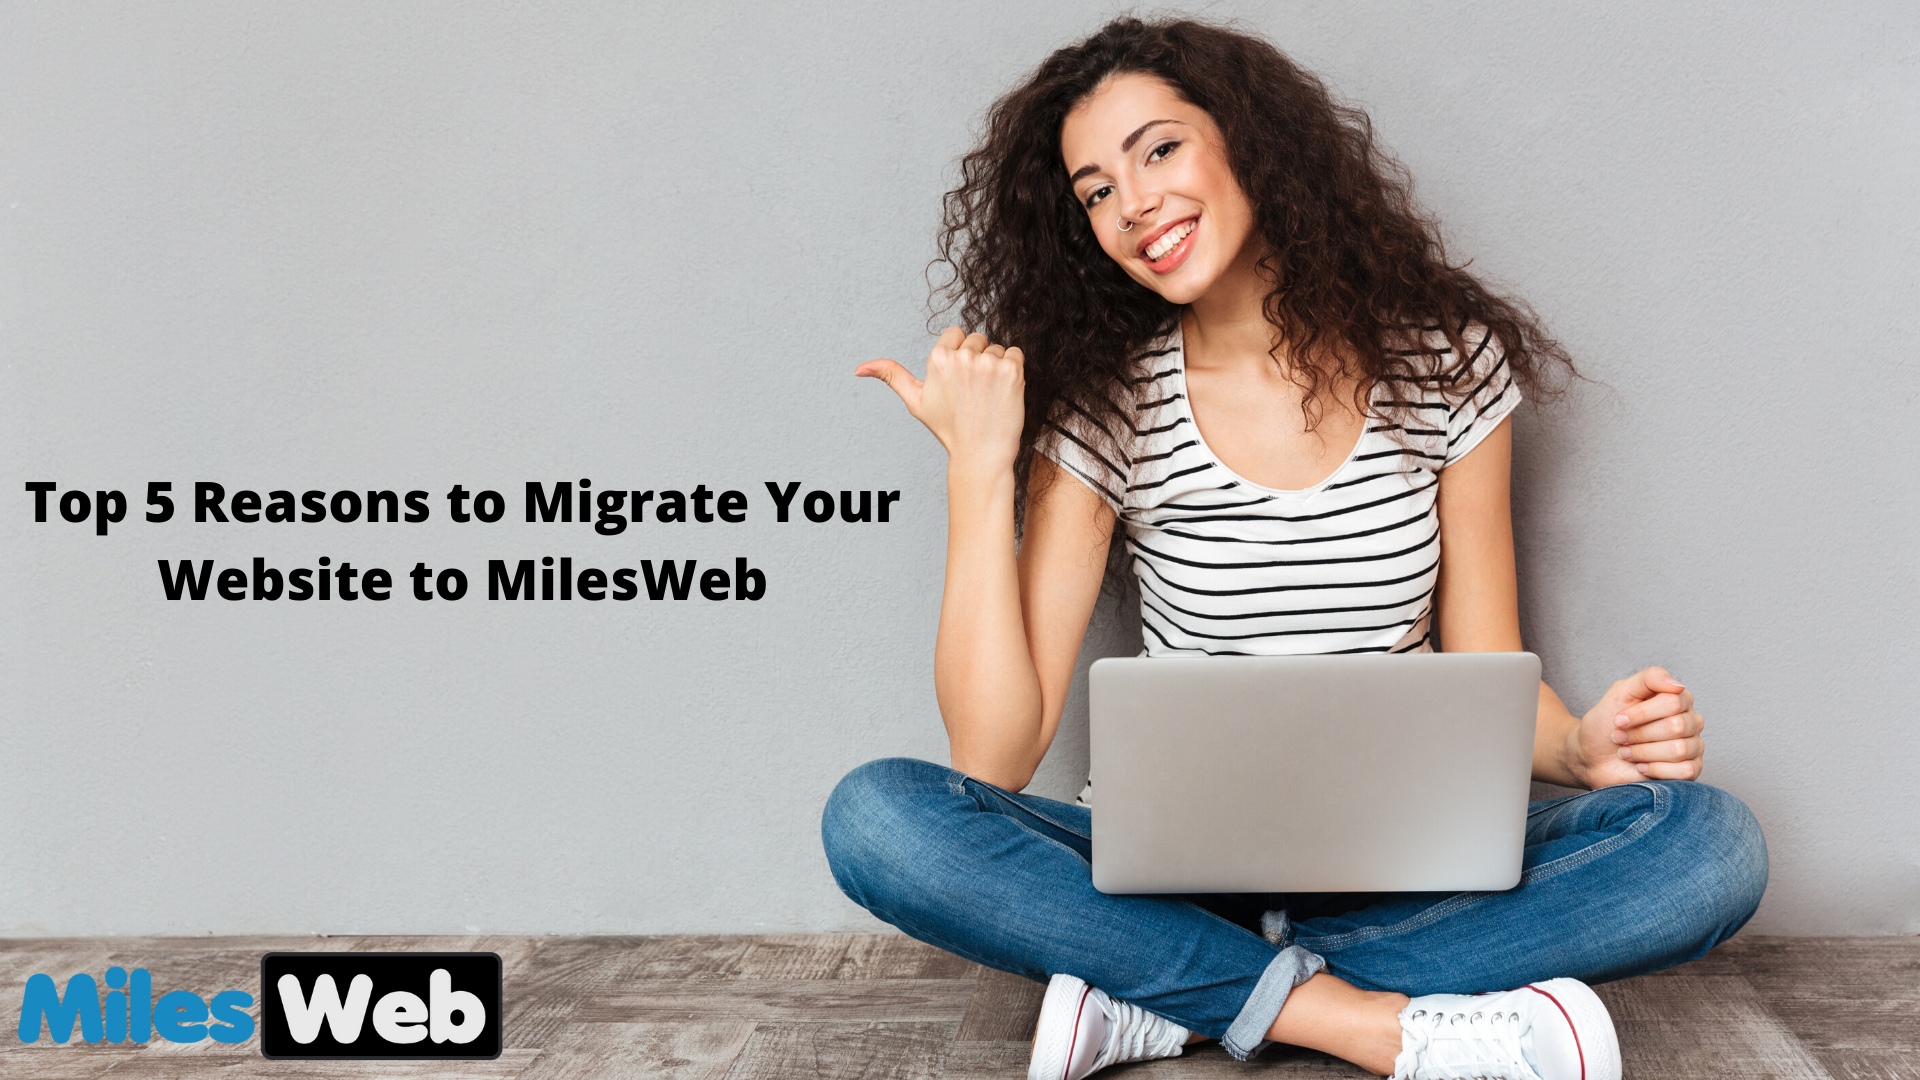 Migrate Your Website to MilesWeb